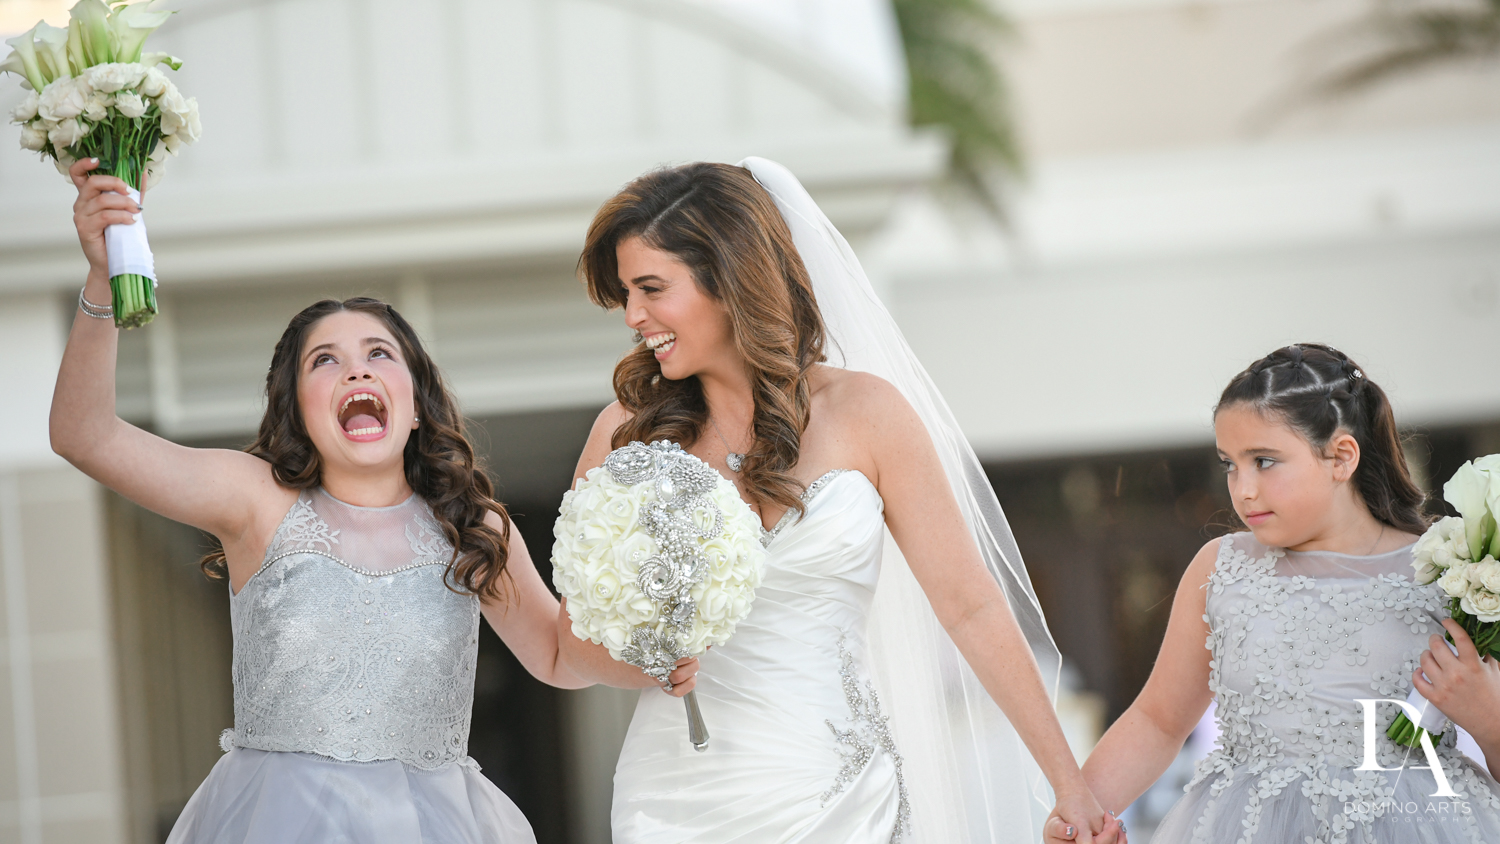 Girls having fun at Wedding Photography in South Florida at Fort Lauderdale Marriott Harbor Beach Resort & Spa by Domino Arts Photography